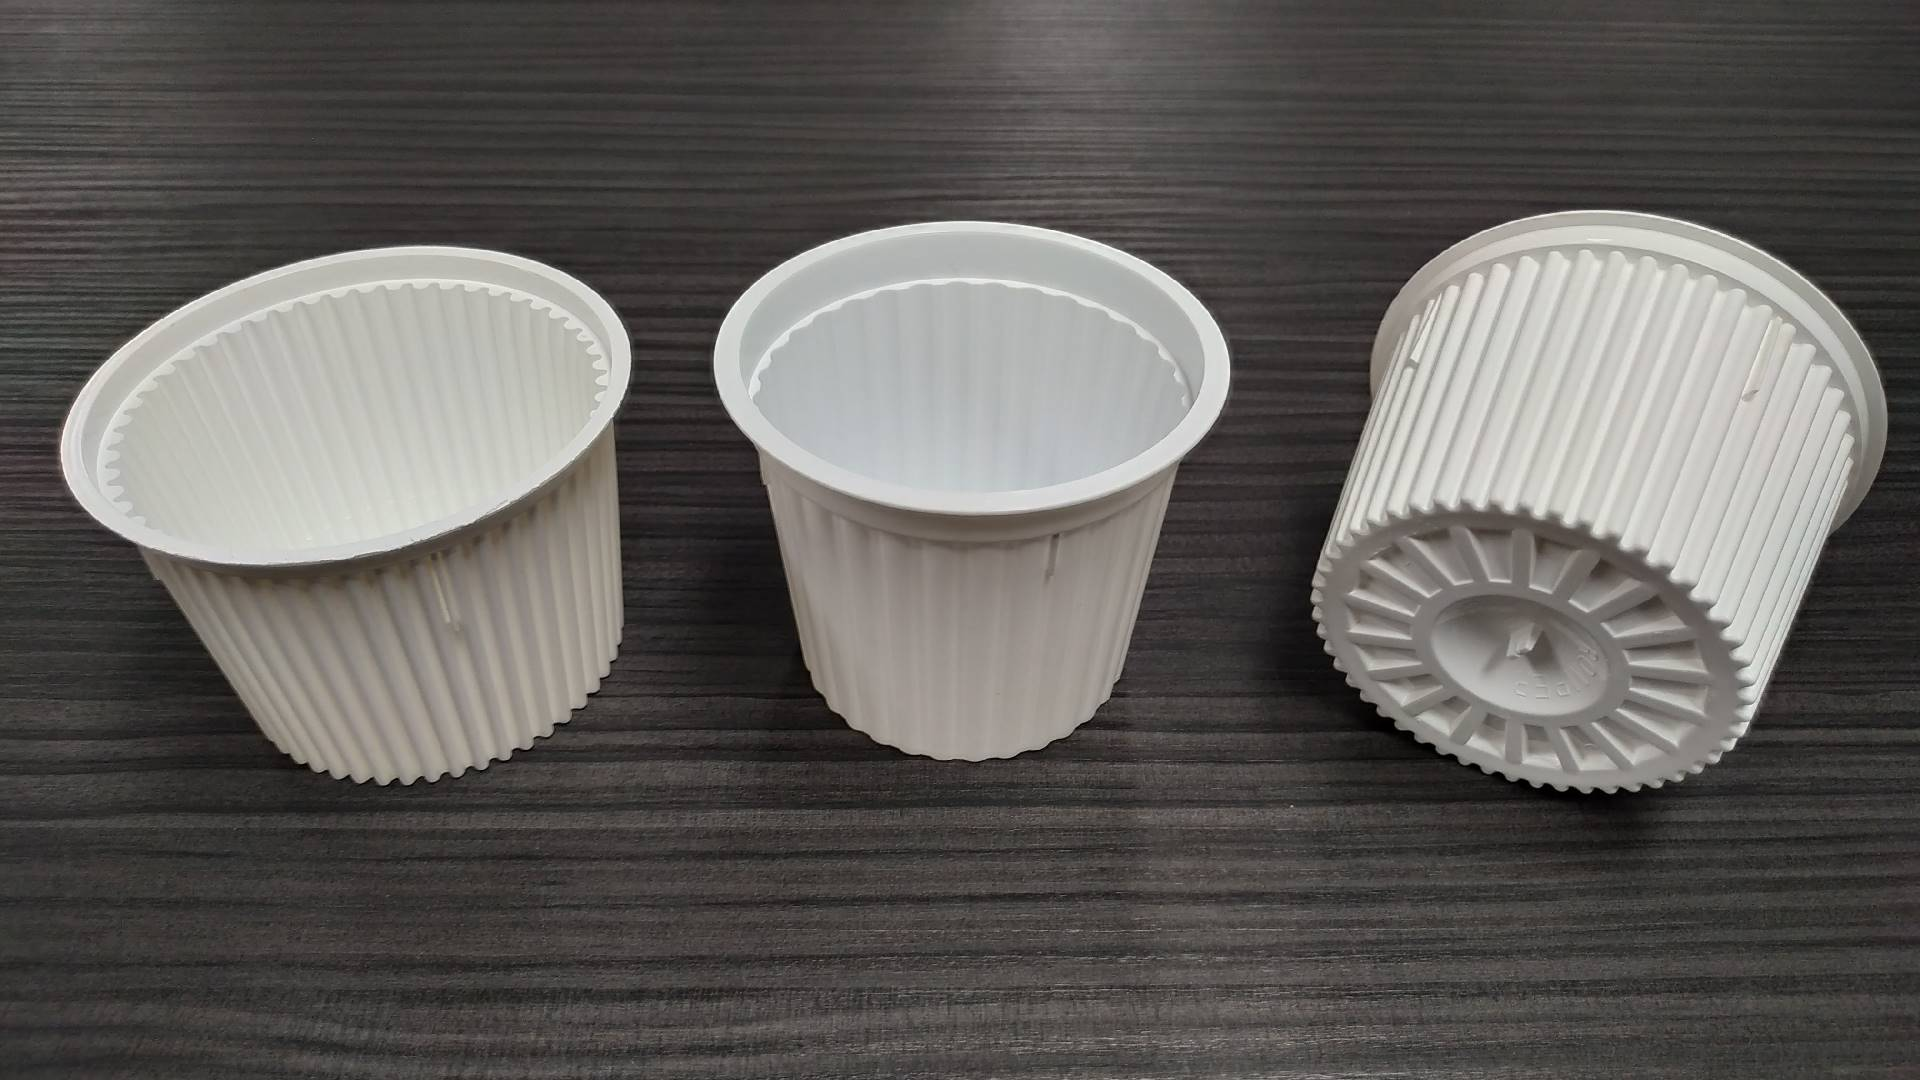 4 and 6 cavities molds POTS